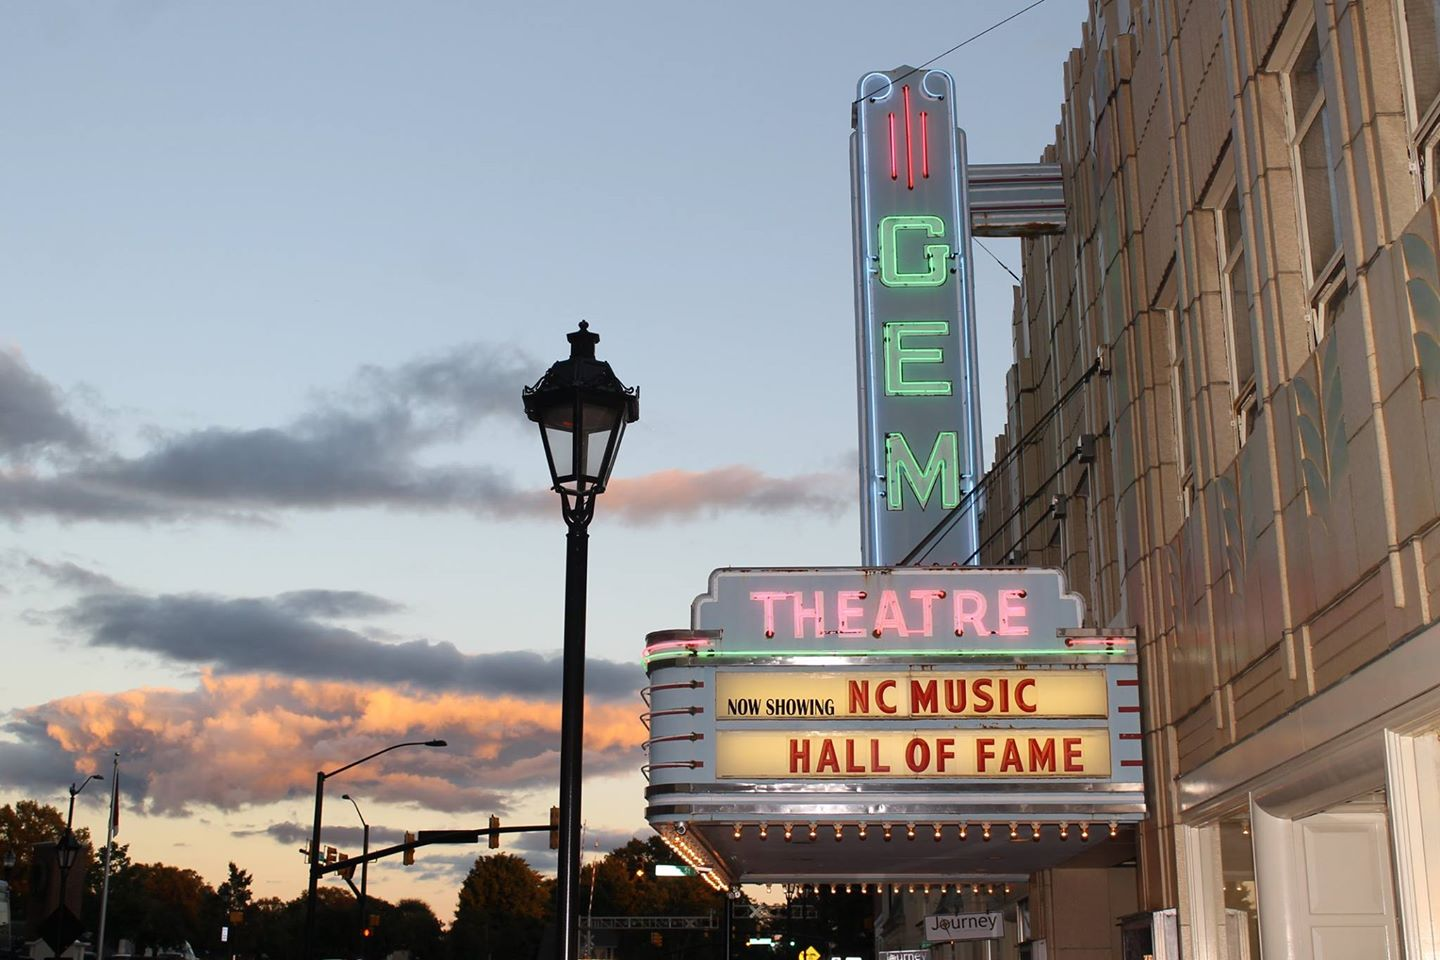 Photo Source: North Carolina Music Hall of Fame.